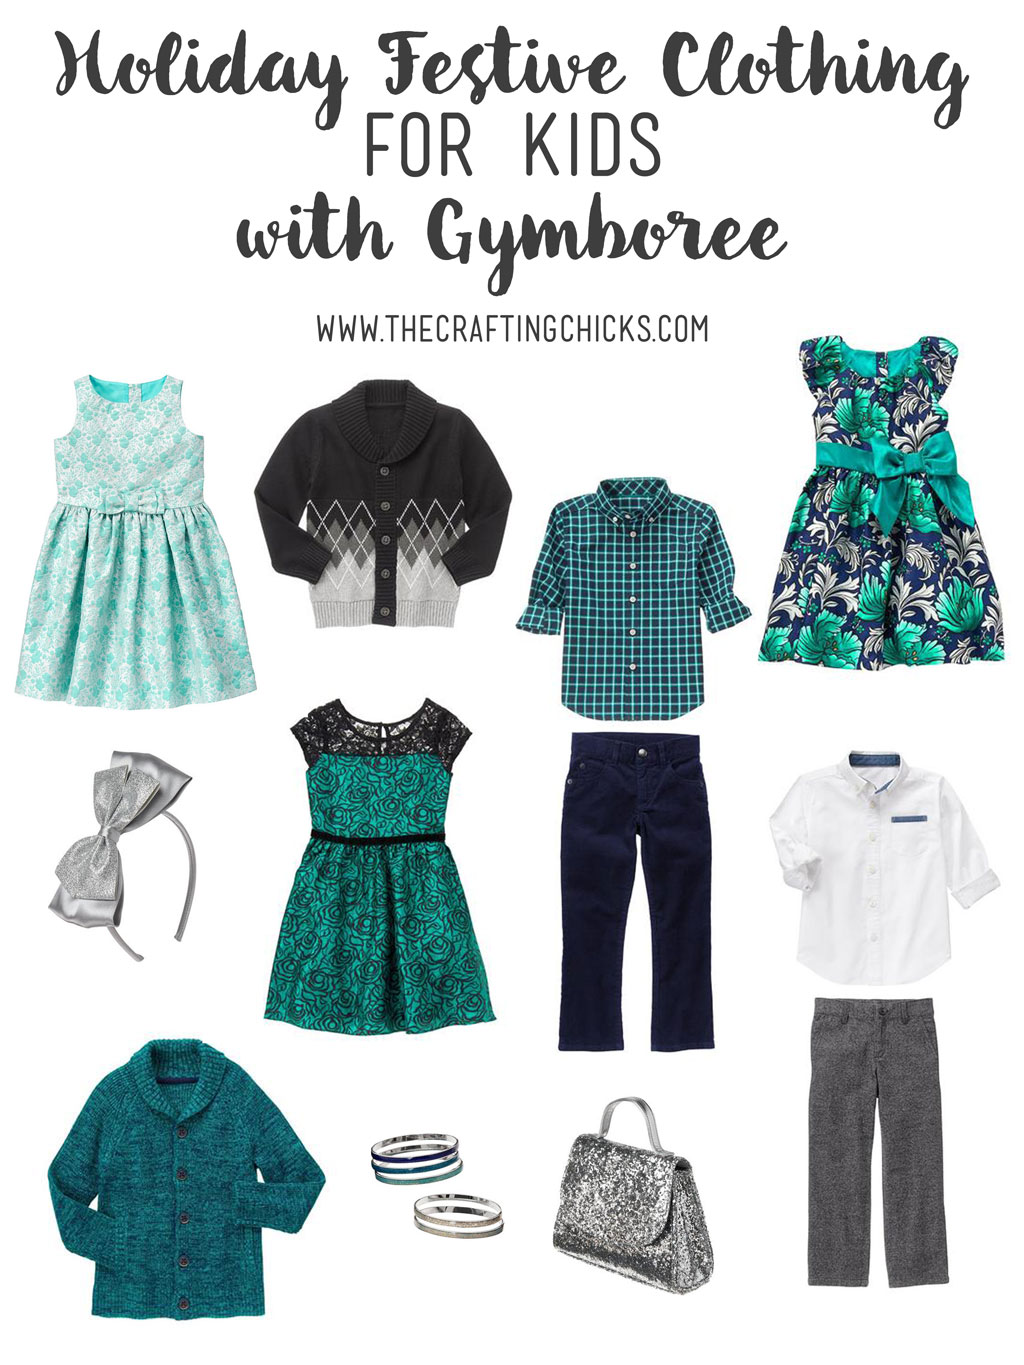 362b063a0 Holiday Festive Clothing for kids with Gymboree. This clothing guide will  help you pick the